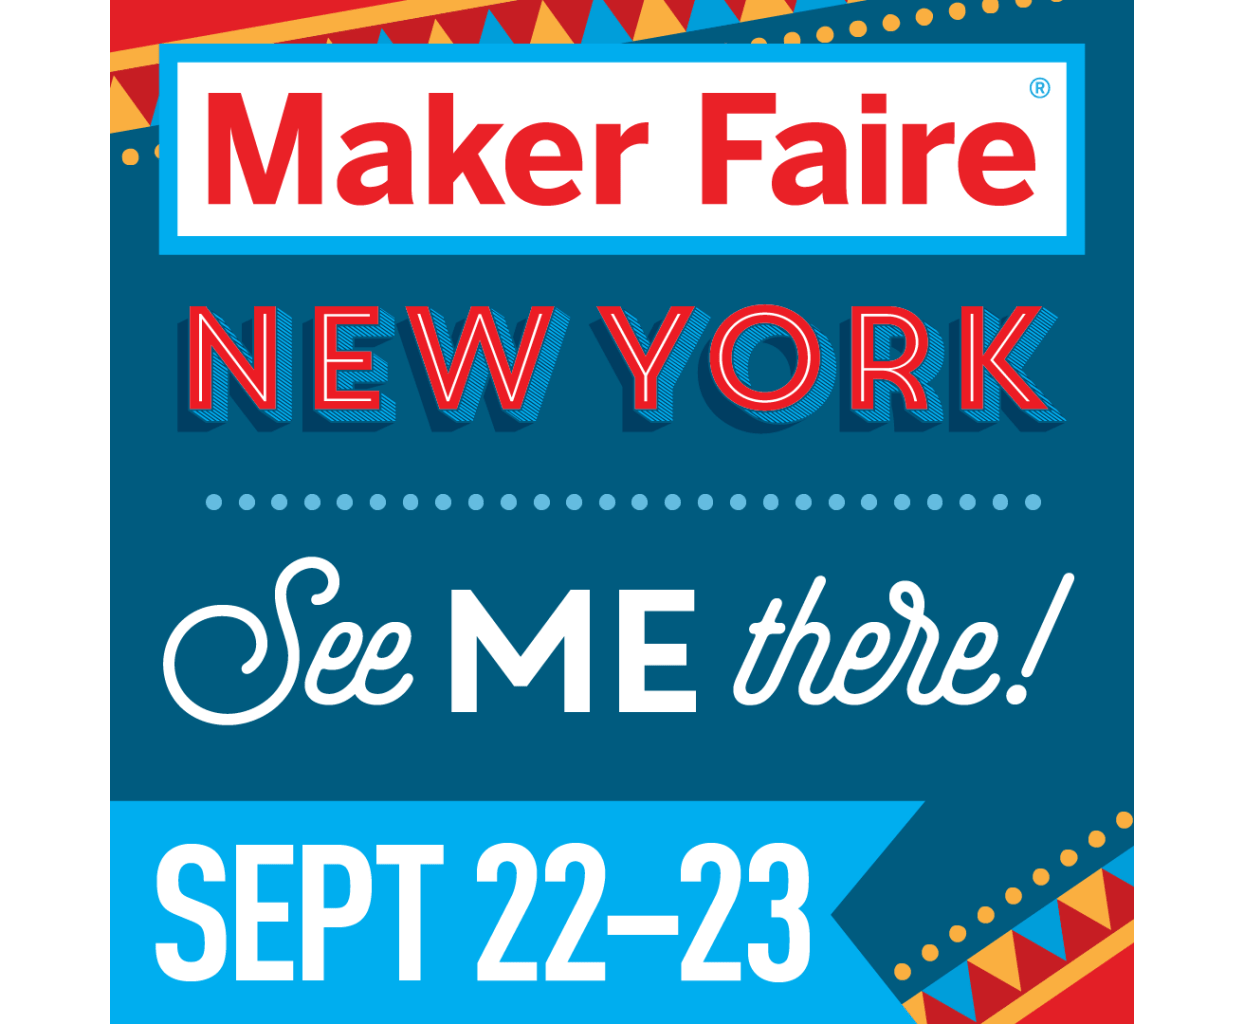 Maker Faire New York 2018 - Were you at Maker Faire New York in 2018? I was and it certainly seemed like all the big makers were there! It was a fantastic event and I barely left the DIY Content Creator tent the entire weekend.